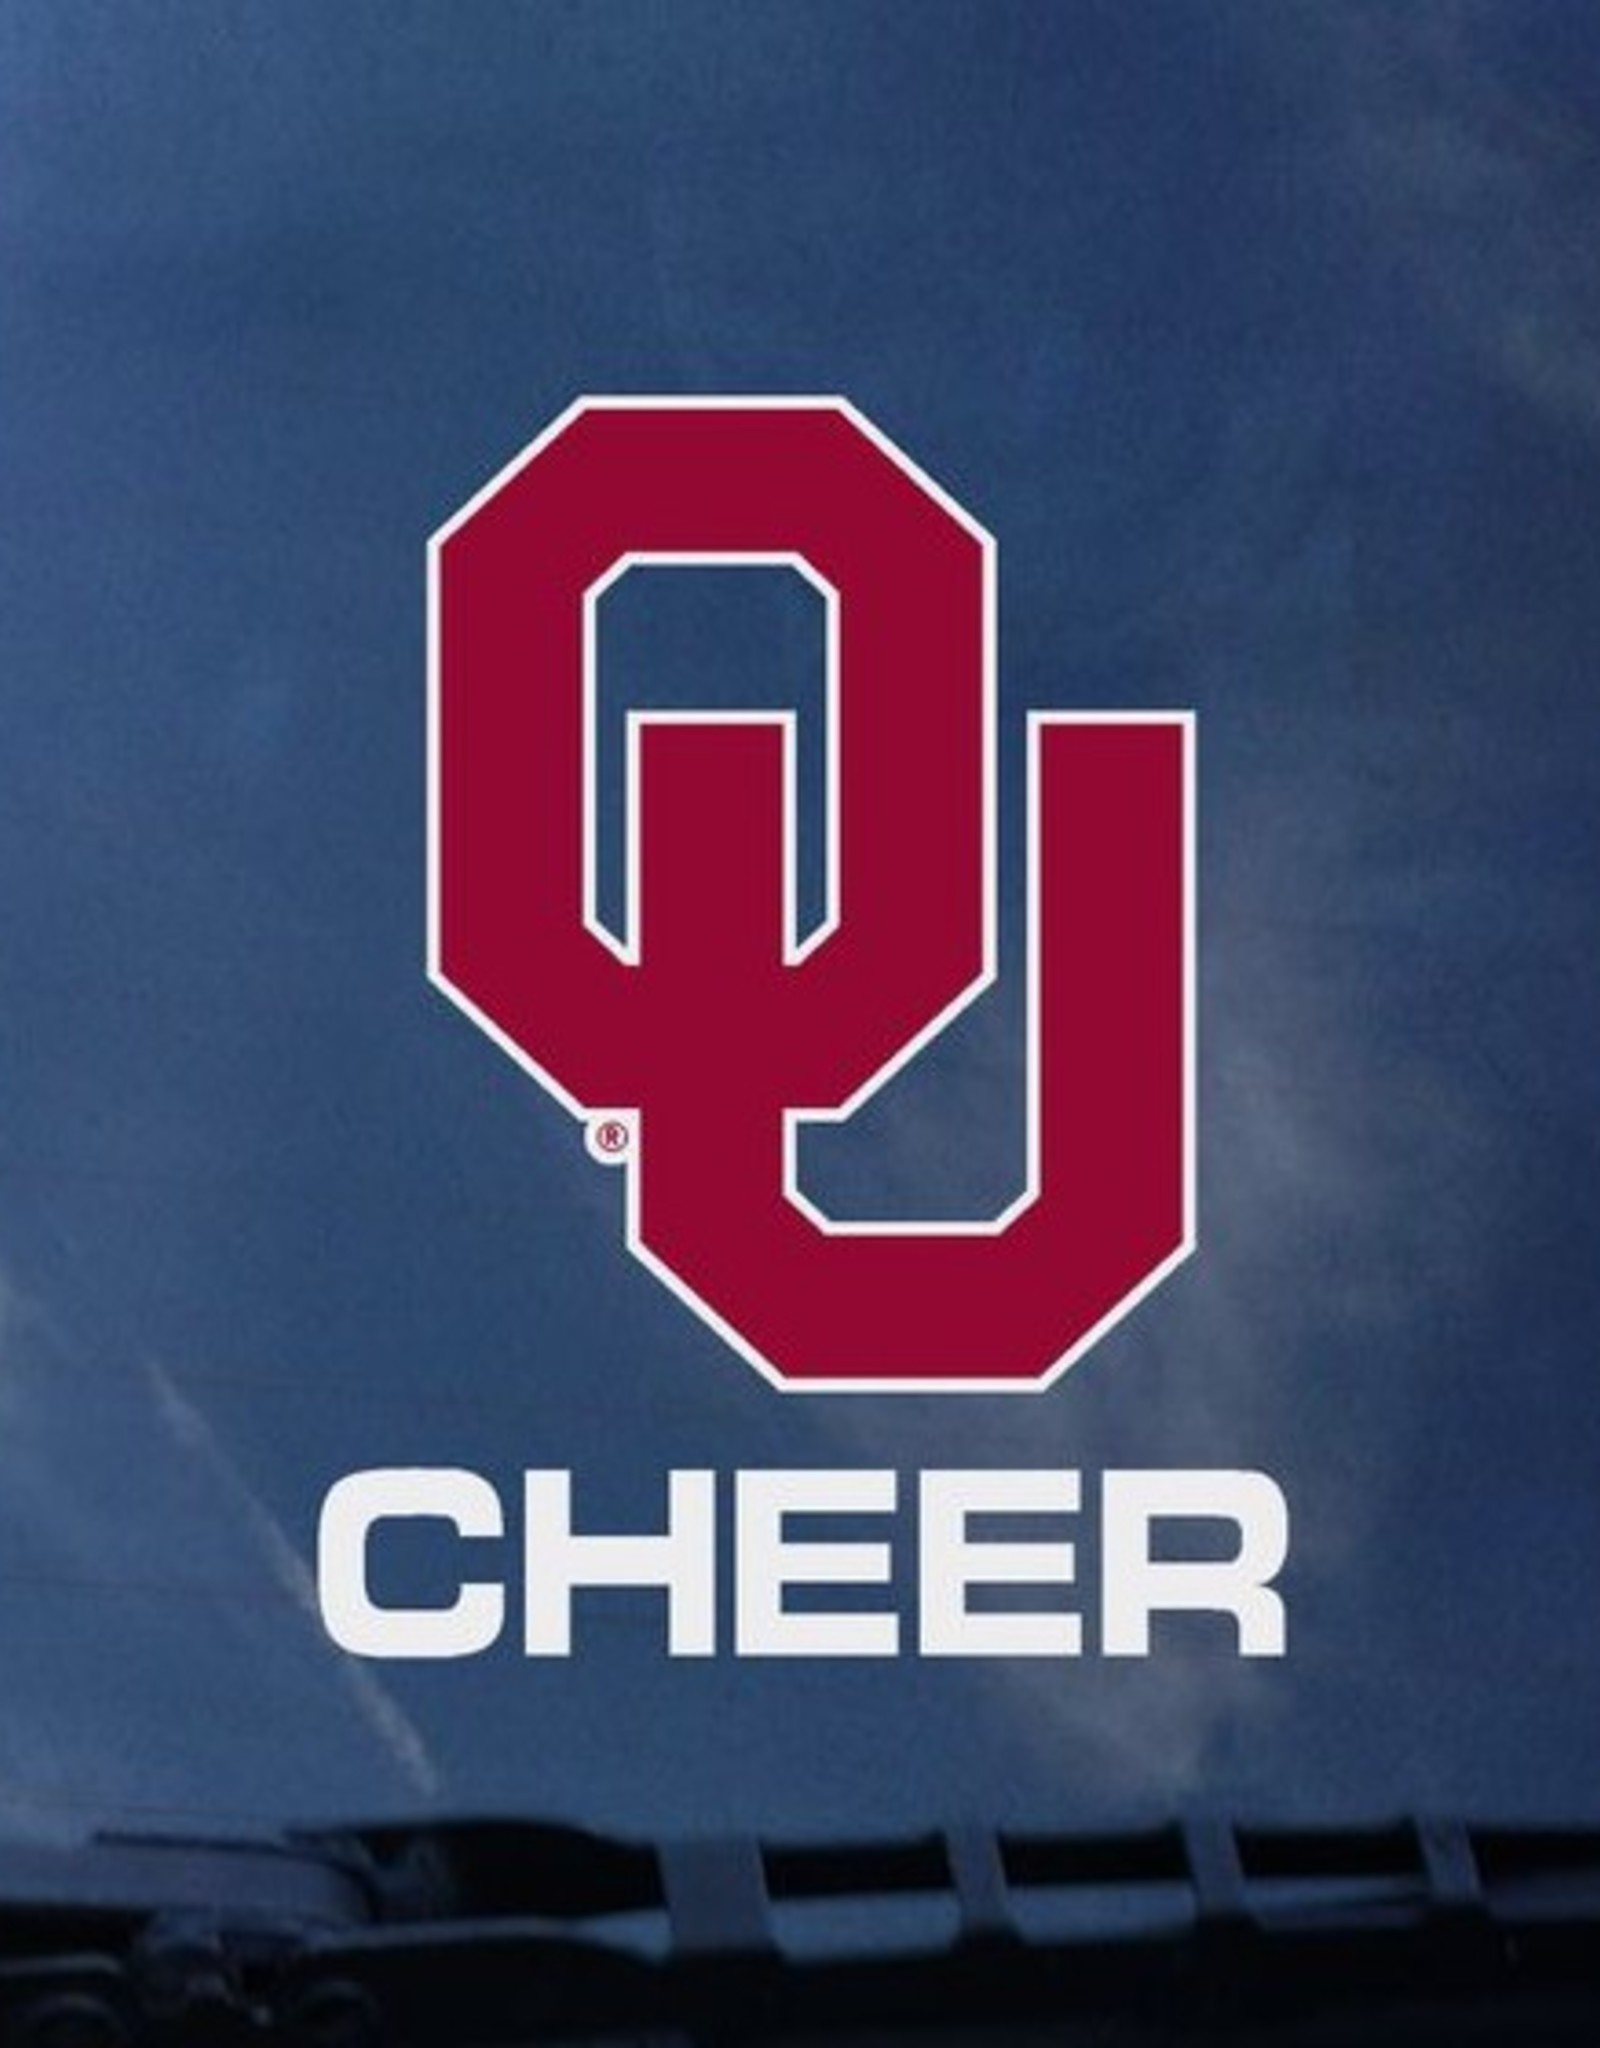 Color Shock OU Cheer Auto Decal